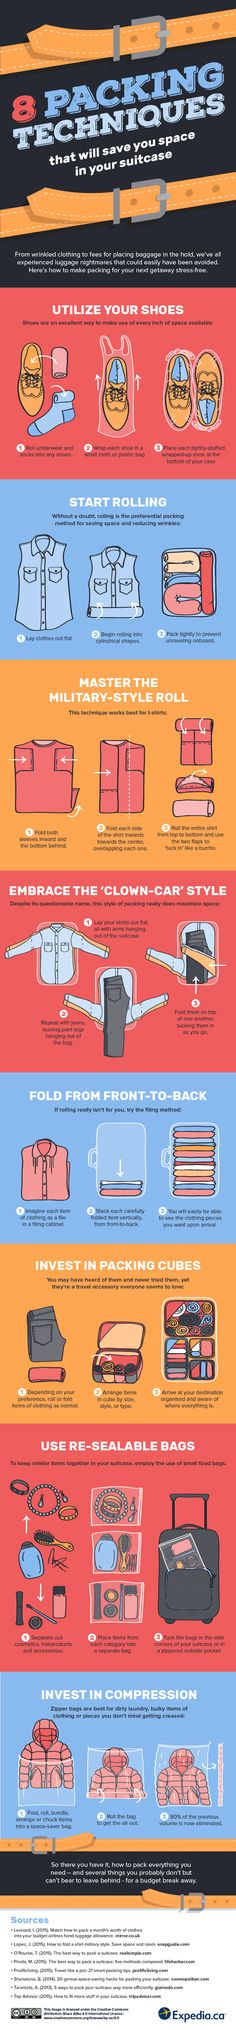 We've covered lots of ways to cram a lot of stuff in small suitcases, but this video and infographic from Expedia is full of handy packing tips to remember the next time you're heading out on a business trip—or a well-earned vacation.